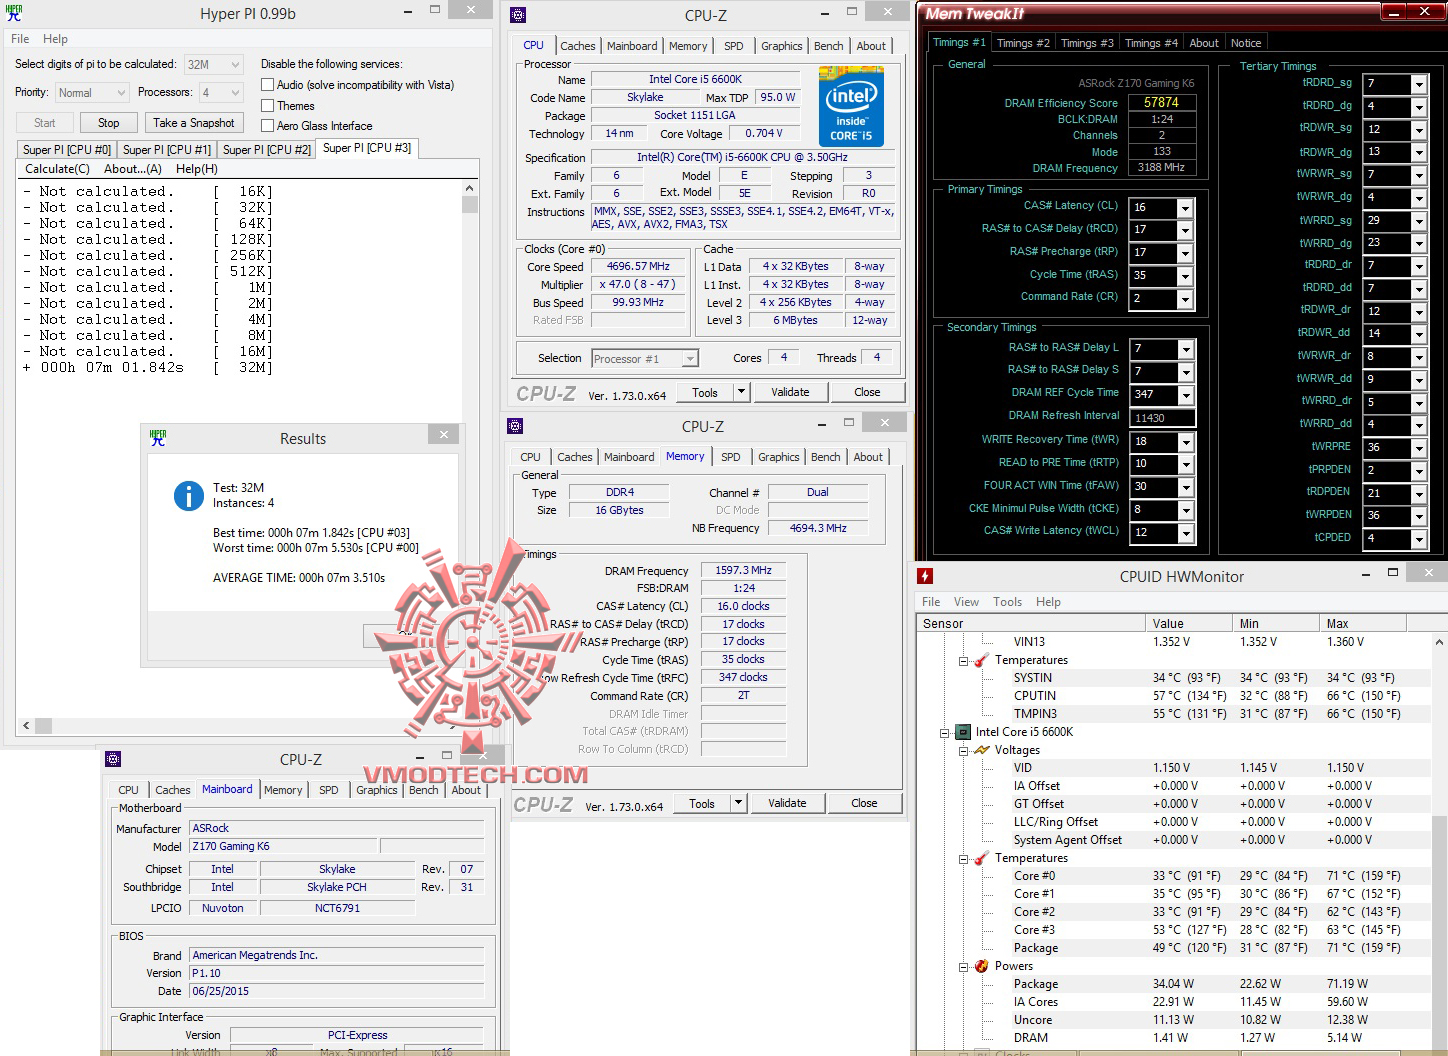 hyperpi32 all oc ASRock Fatal1ty Z170 Gaming K6